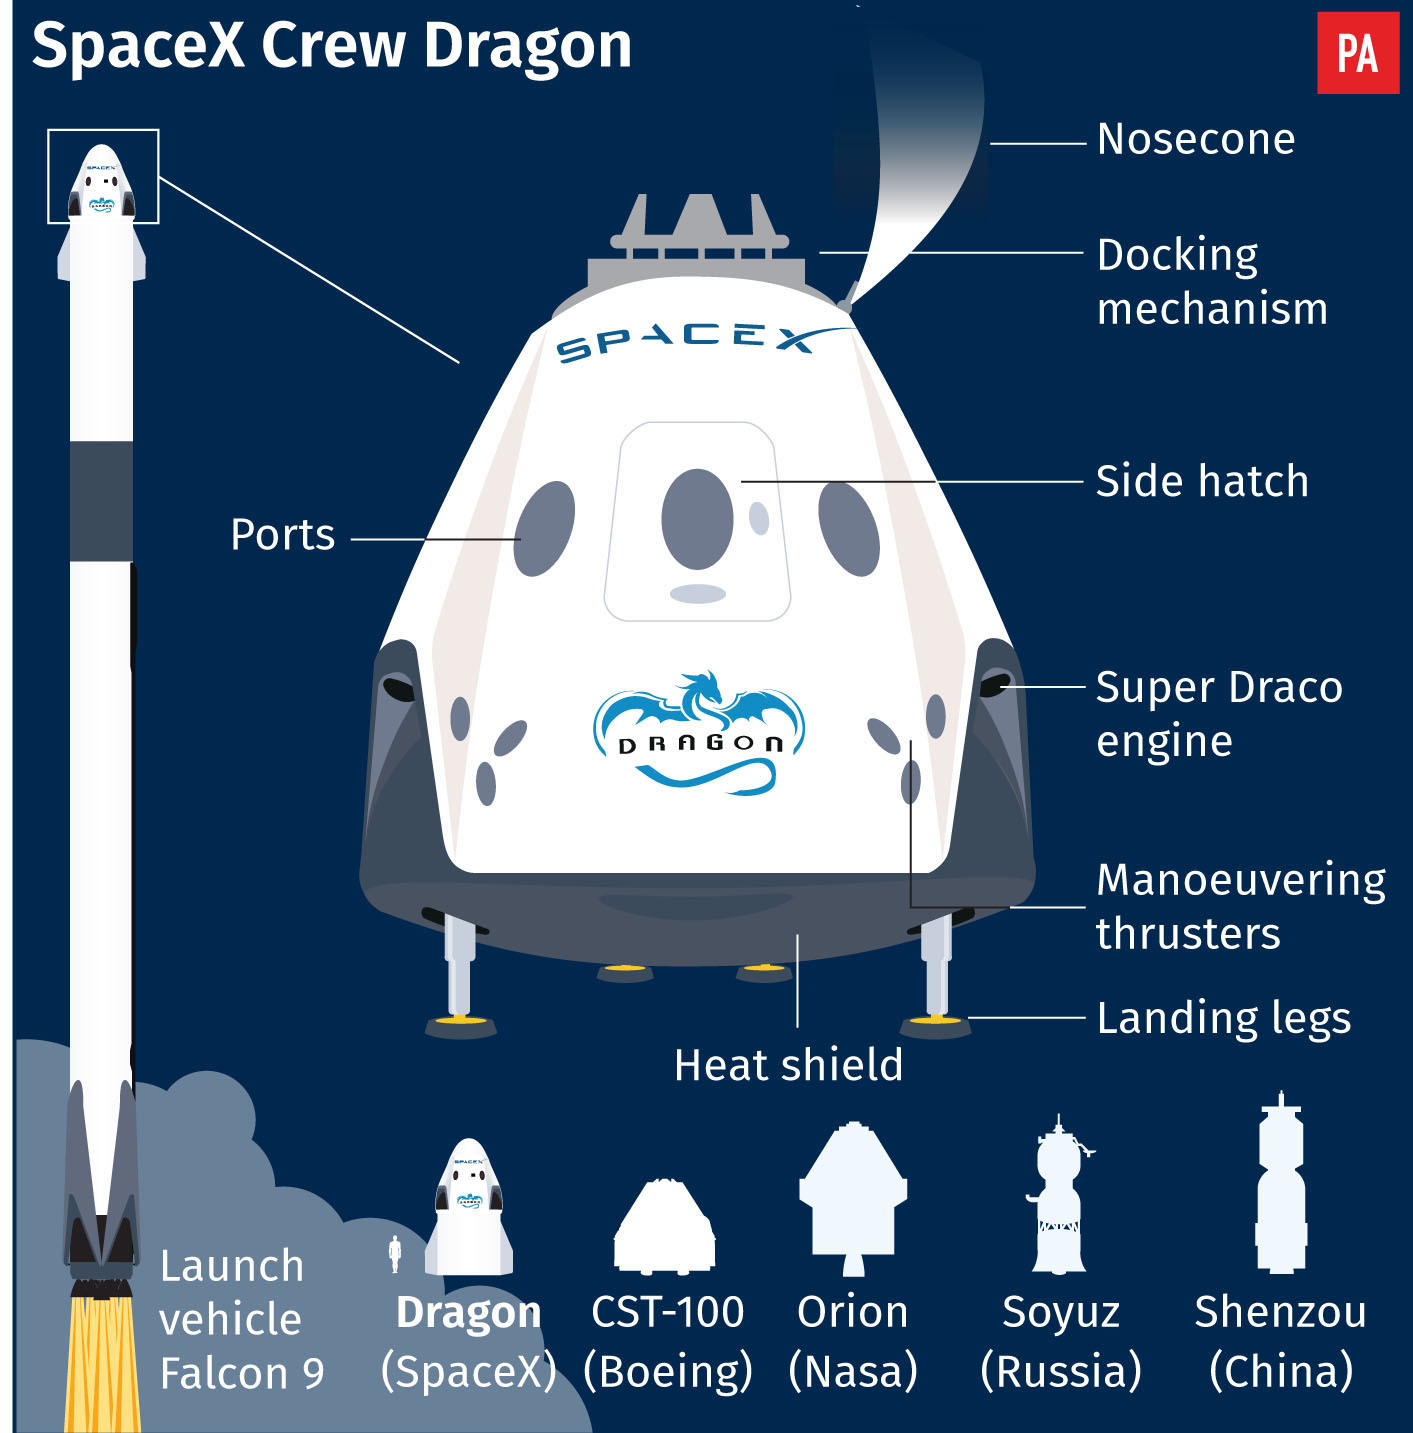 SpaceX's Crew Dragon capsule set for historic test flight